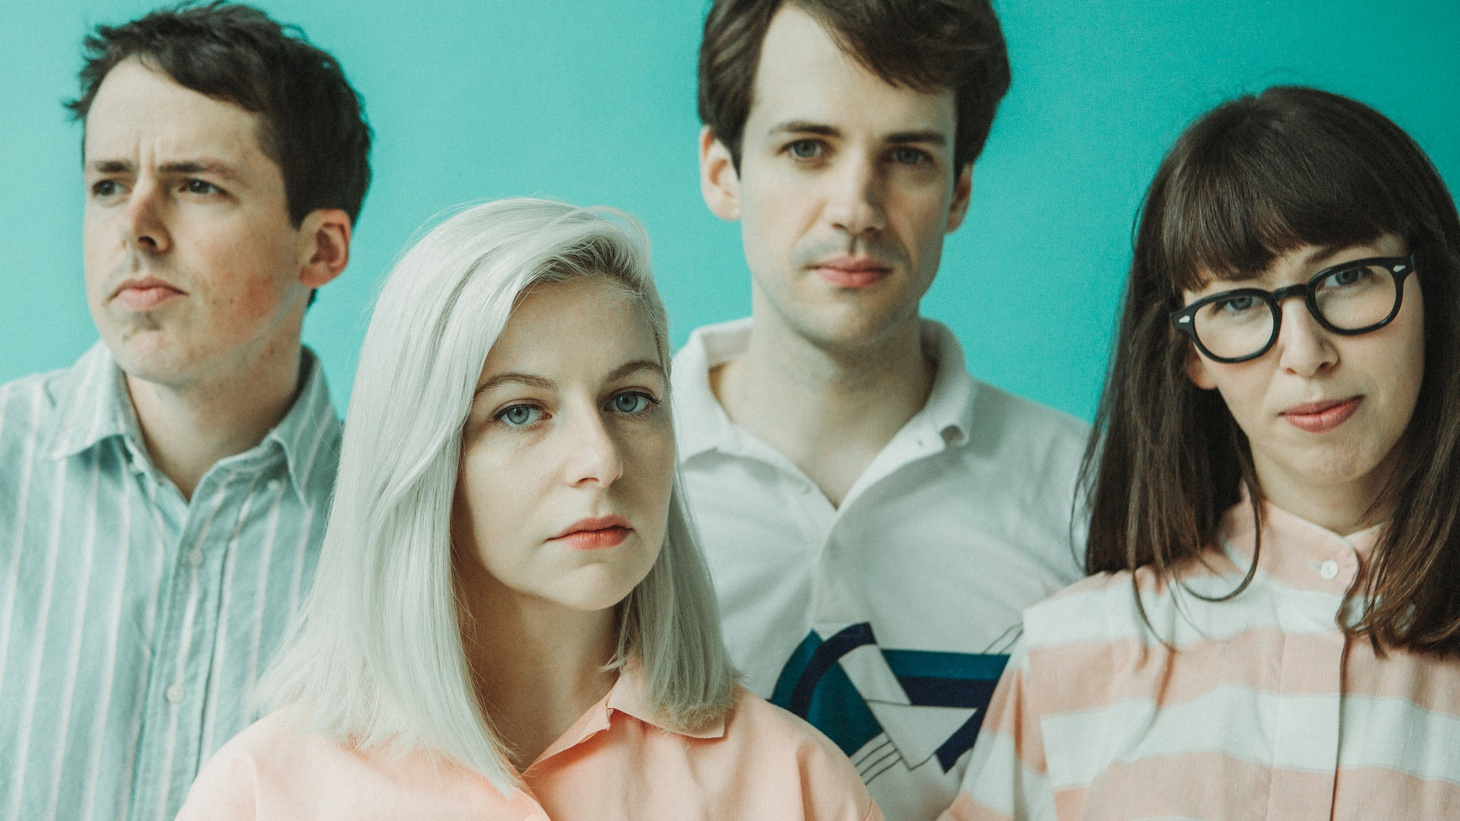 After garnering a lot of buzz and building a devoted fan base, Canadian indie pop band Alvvays really hit its stride on its sophomore album.